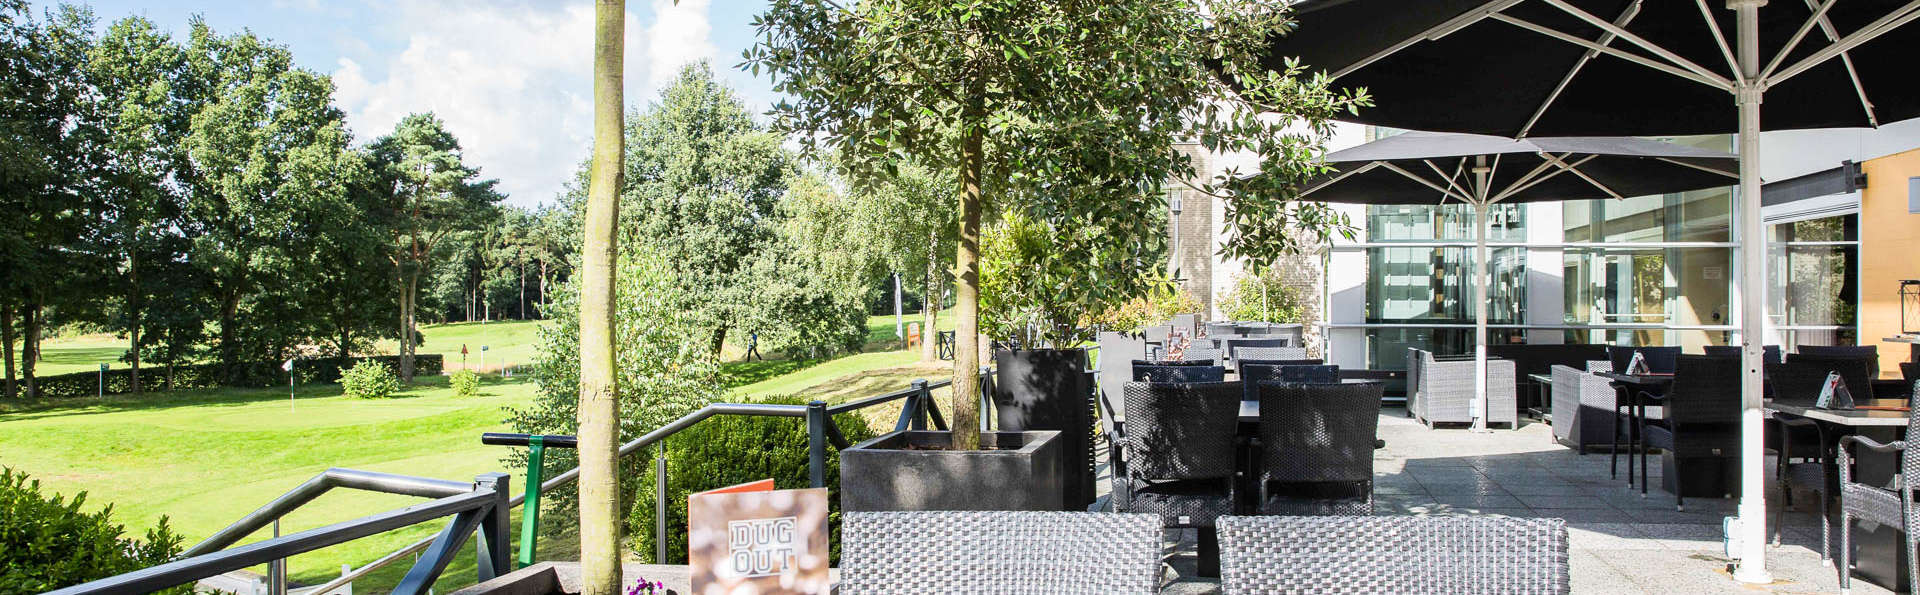 Hotel Papendal - EDIT_TERRACE.jpg